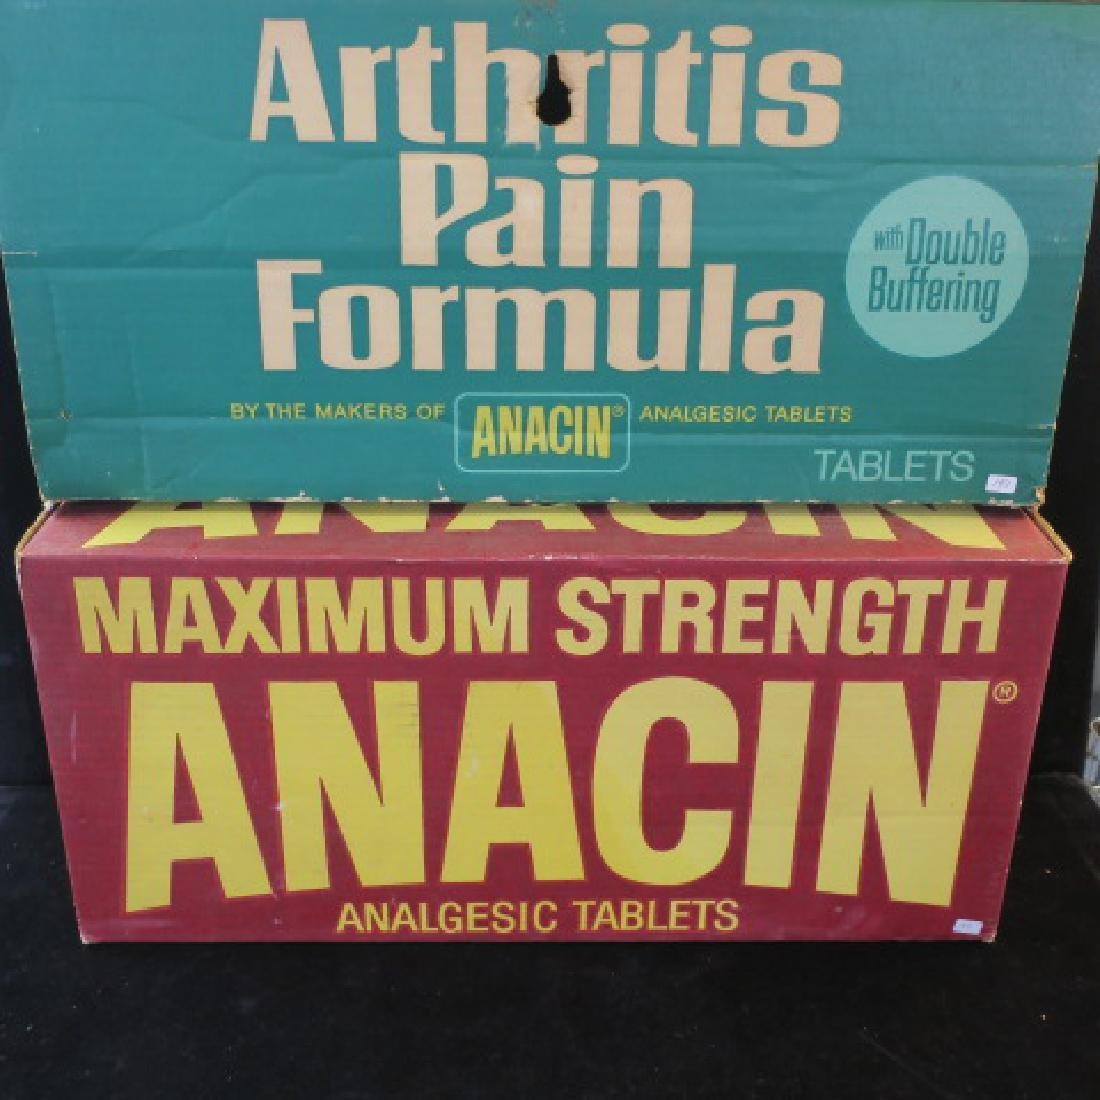 ANACIN ANALGESIC TABLETS Shipping Boxes; Green & Red: